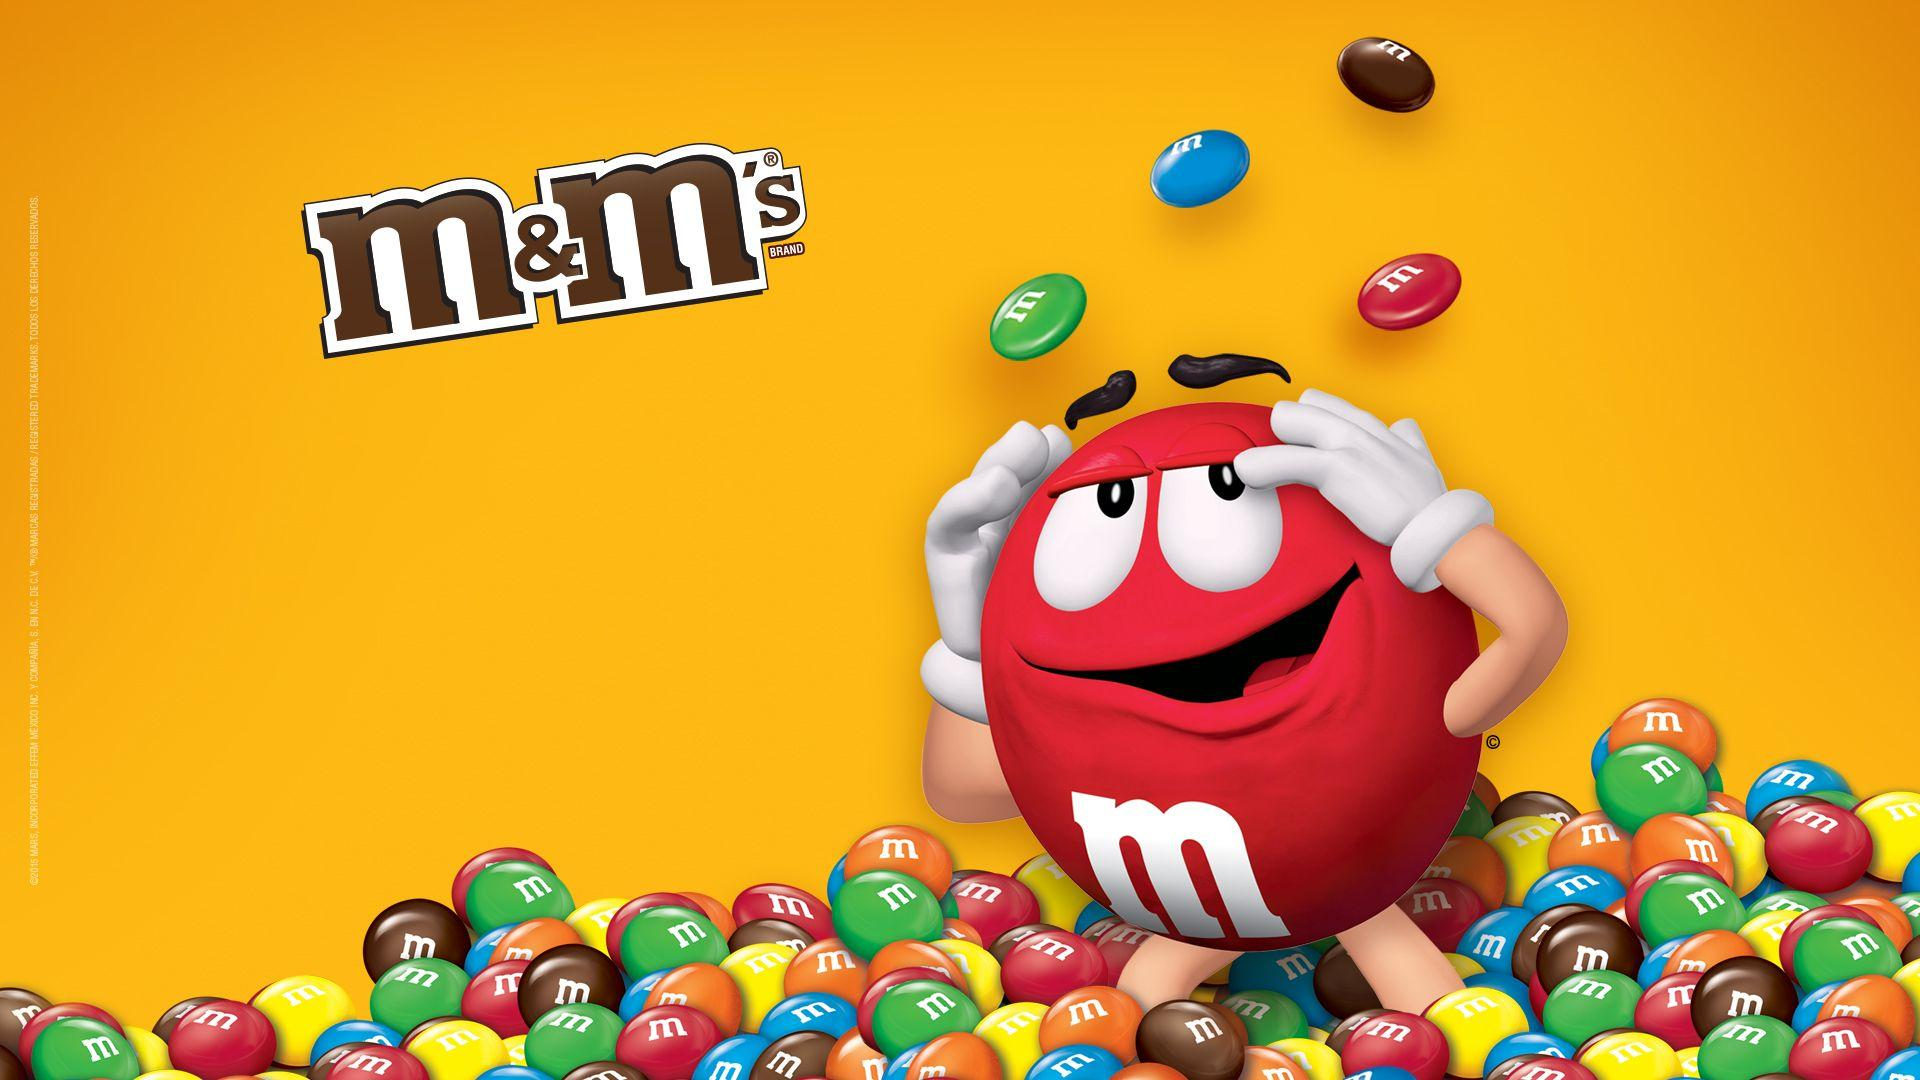 M M Desktop Wallpaper: M&M'S Wallpapers